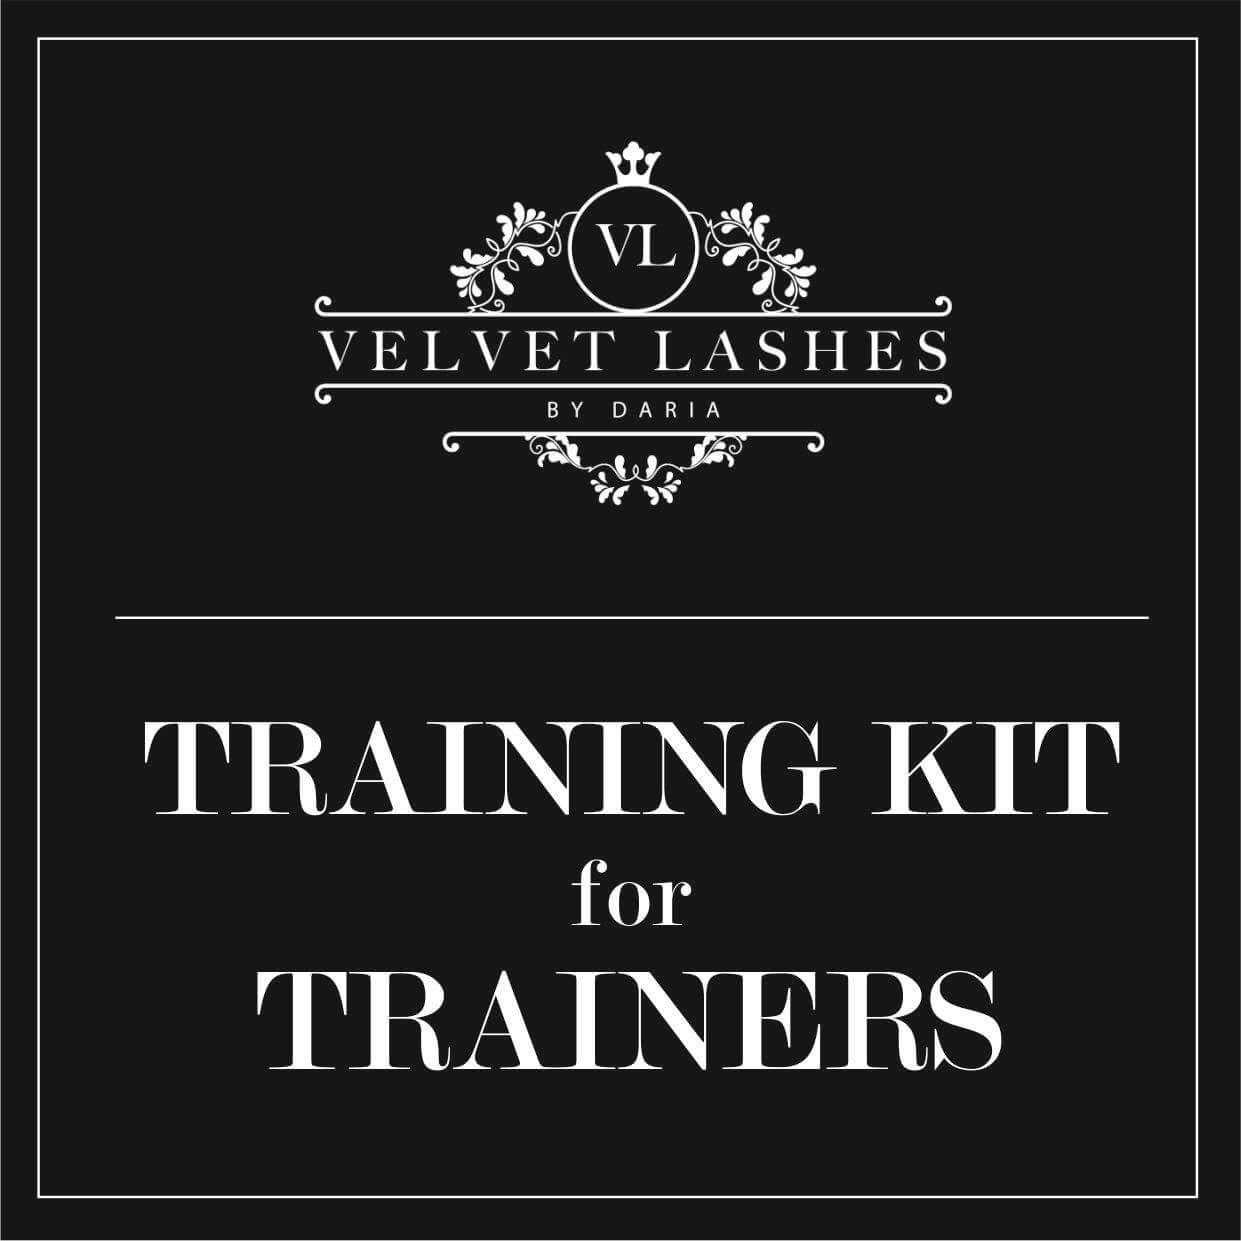 TRAINING KIT FOR TRAINERS